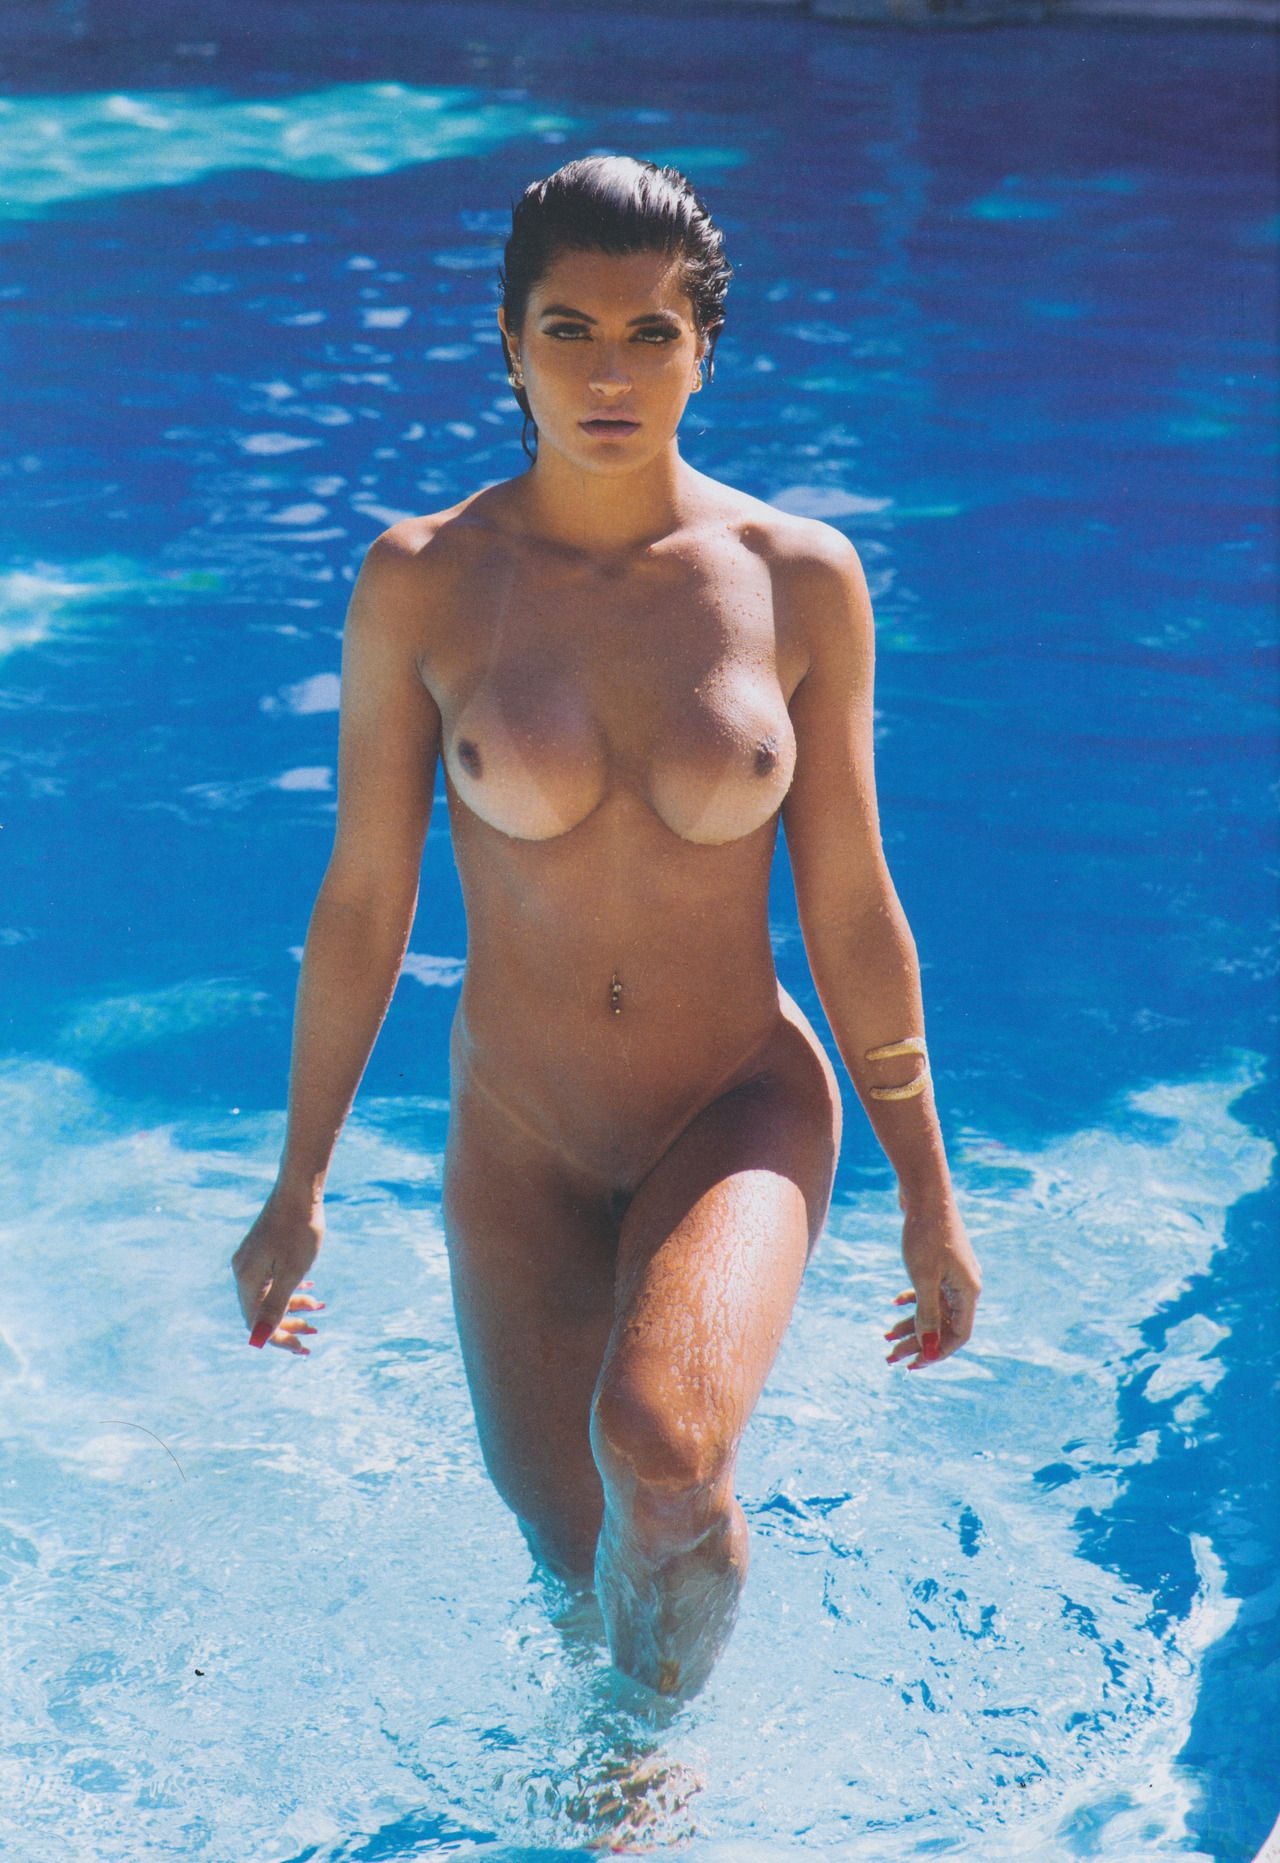 Nude Male Olympic Swimmer